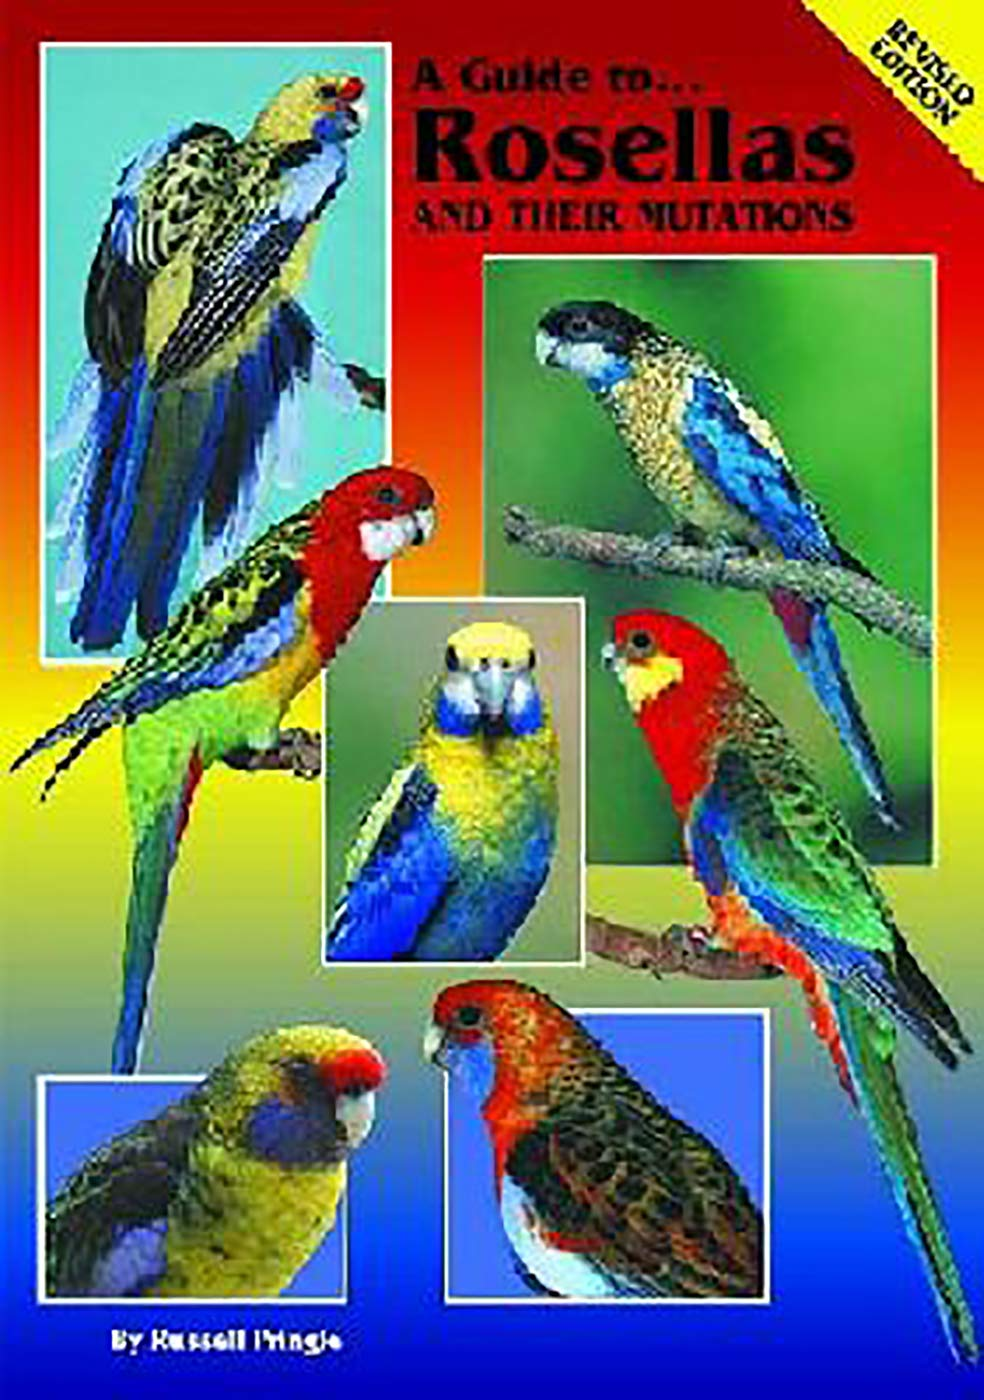 A GUIDE TO ROSELLAS AND THEIR MUTATIONS